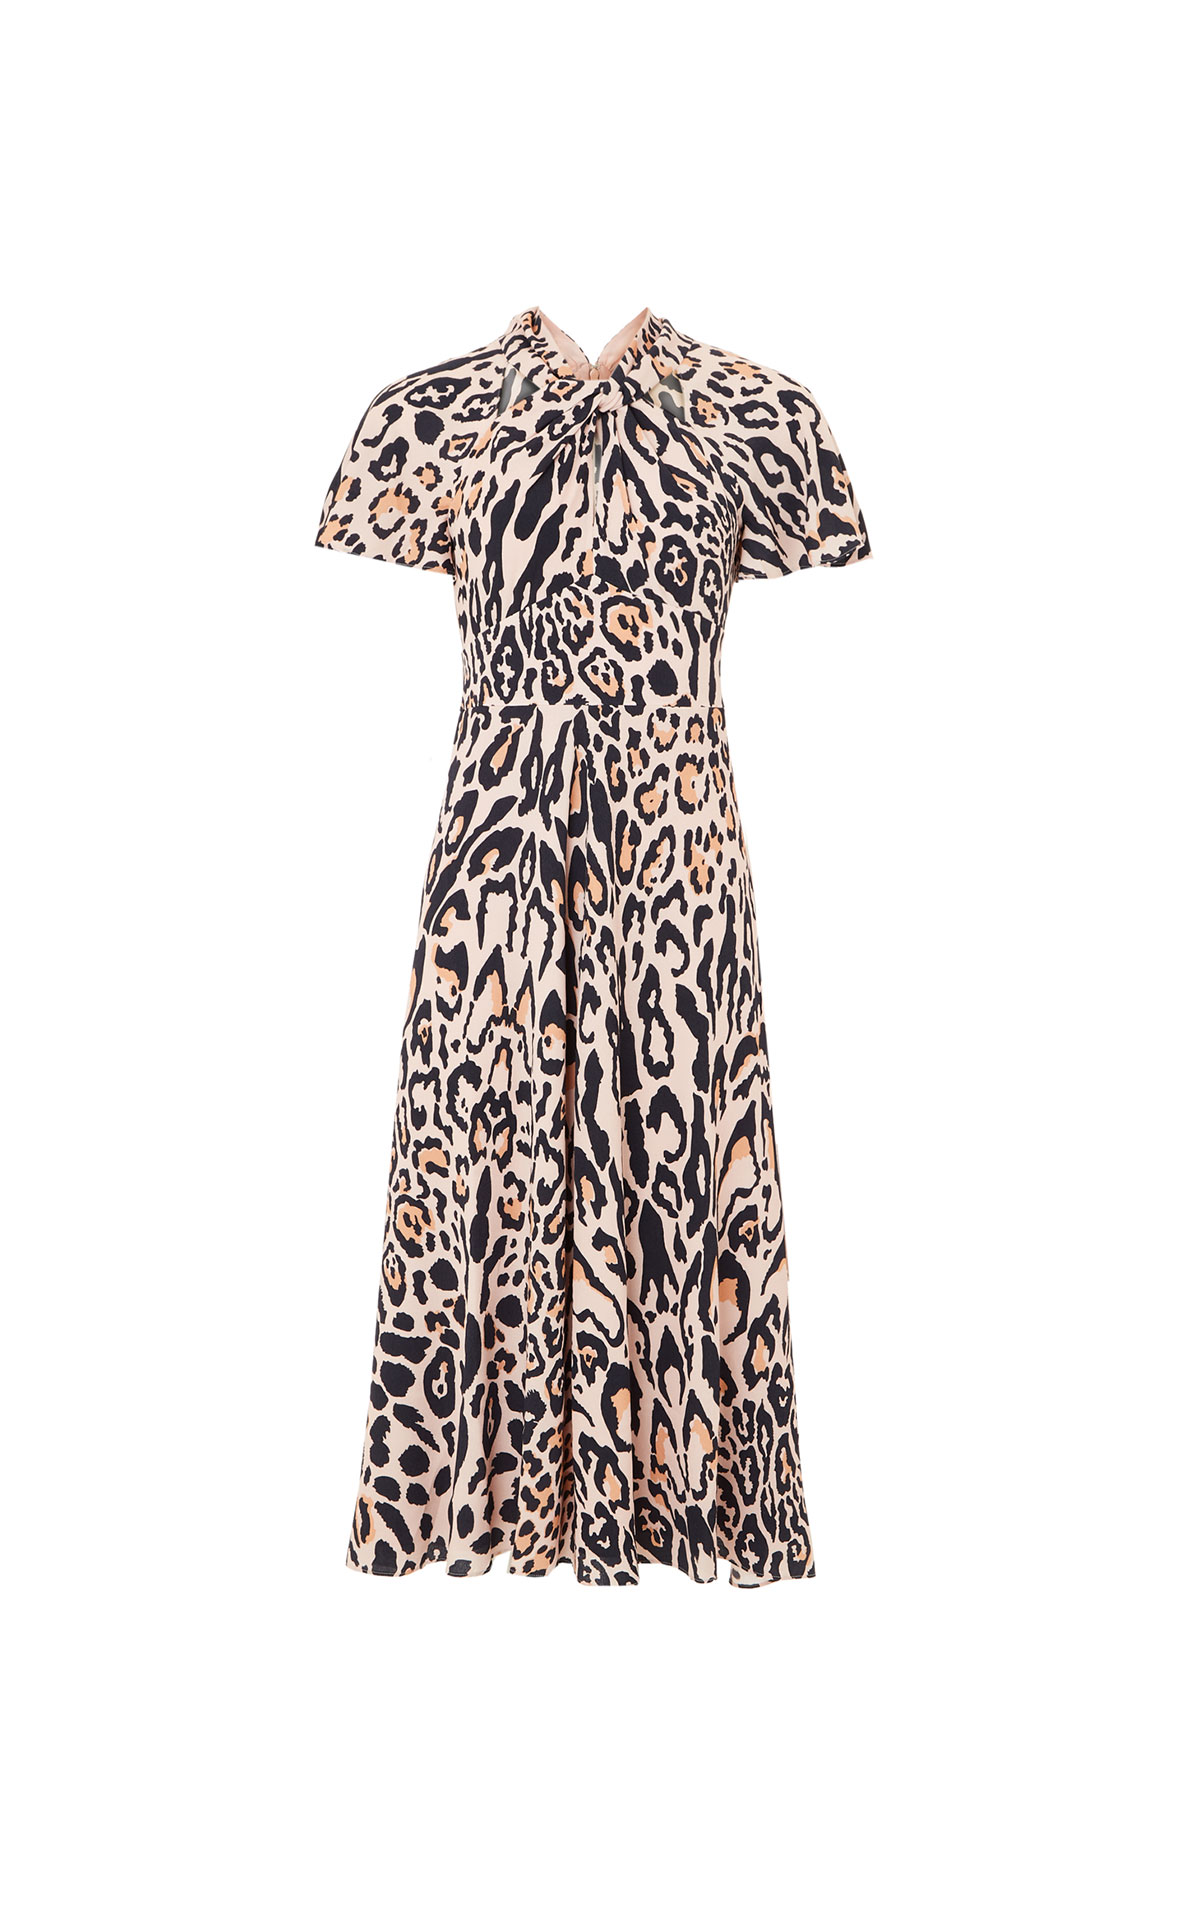 Temperley London Wild cat midi dress from Bicester Village